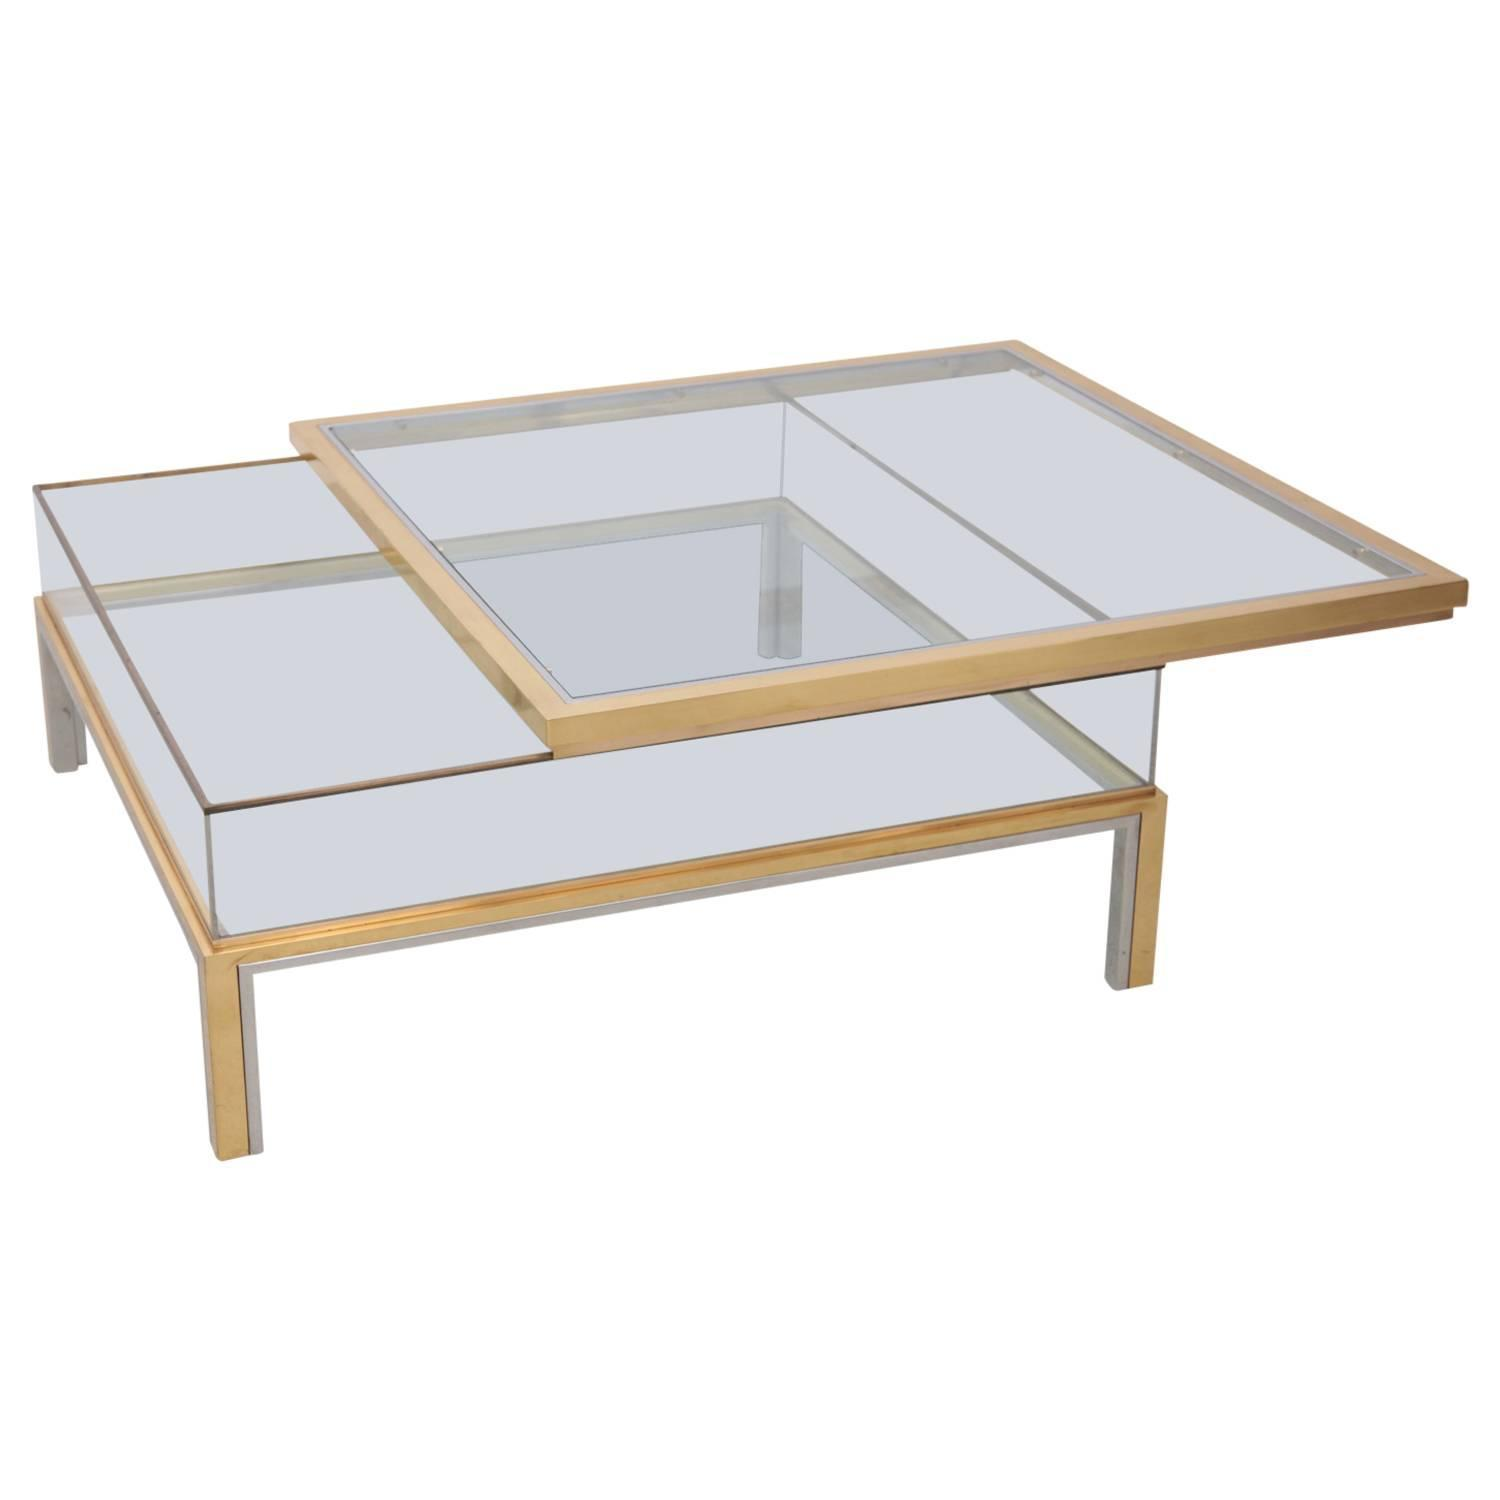 Maison Jansen Sliding Top Coffee Table in Brass and Chrome at 1stdibs